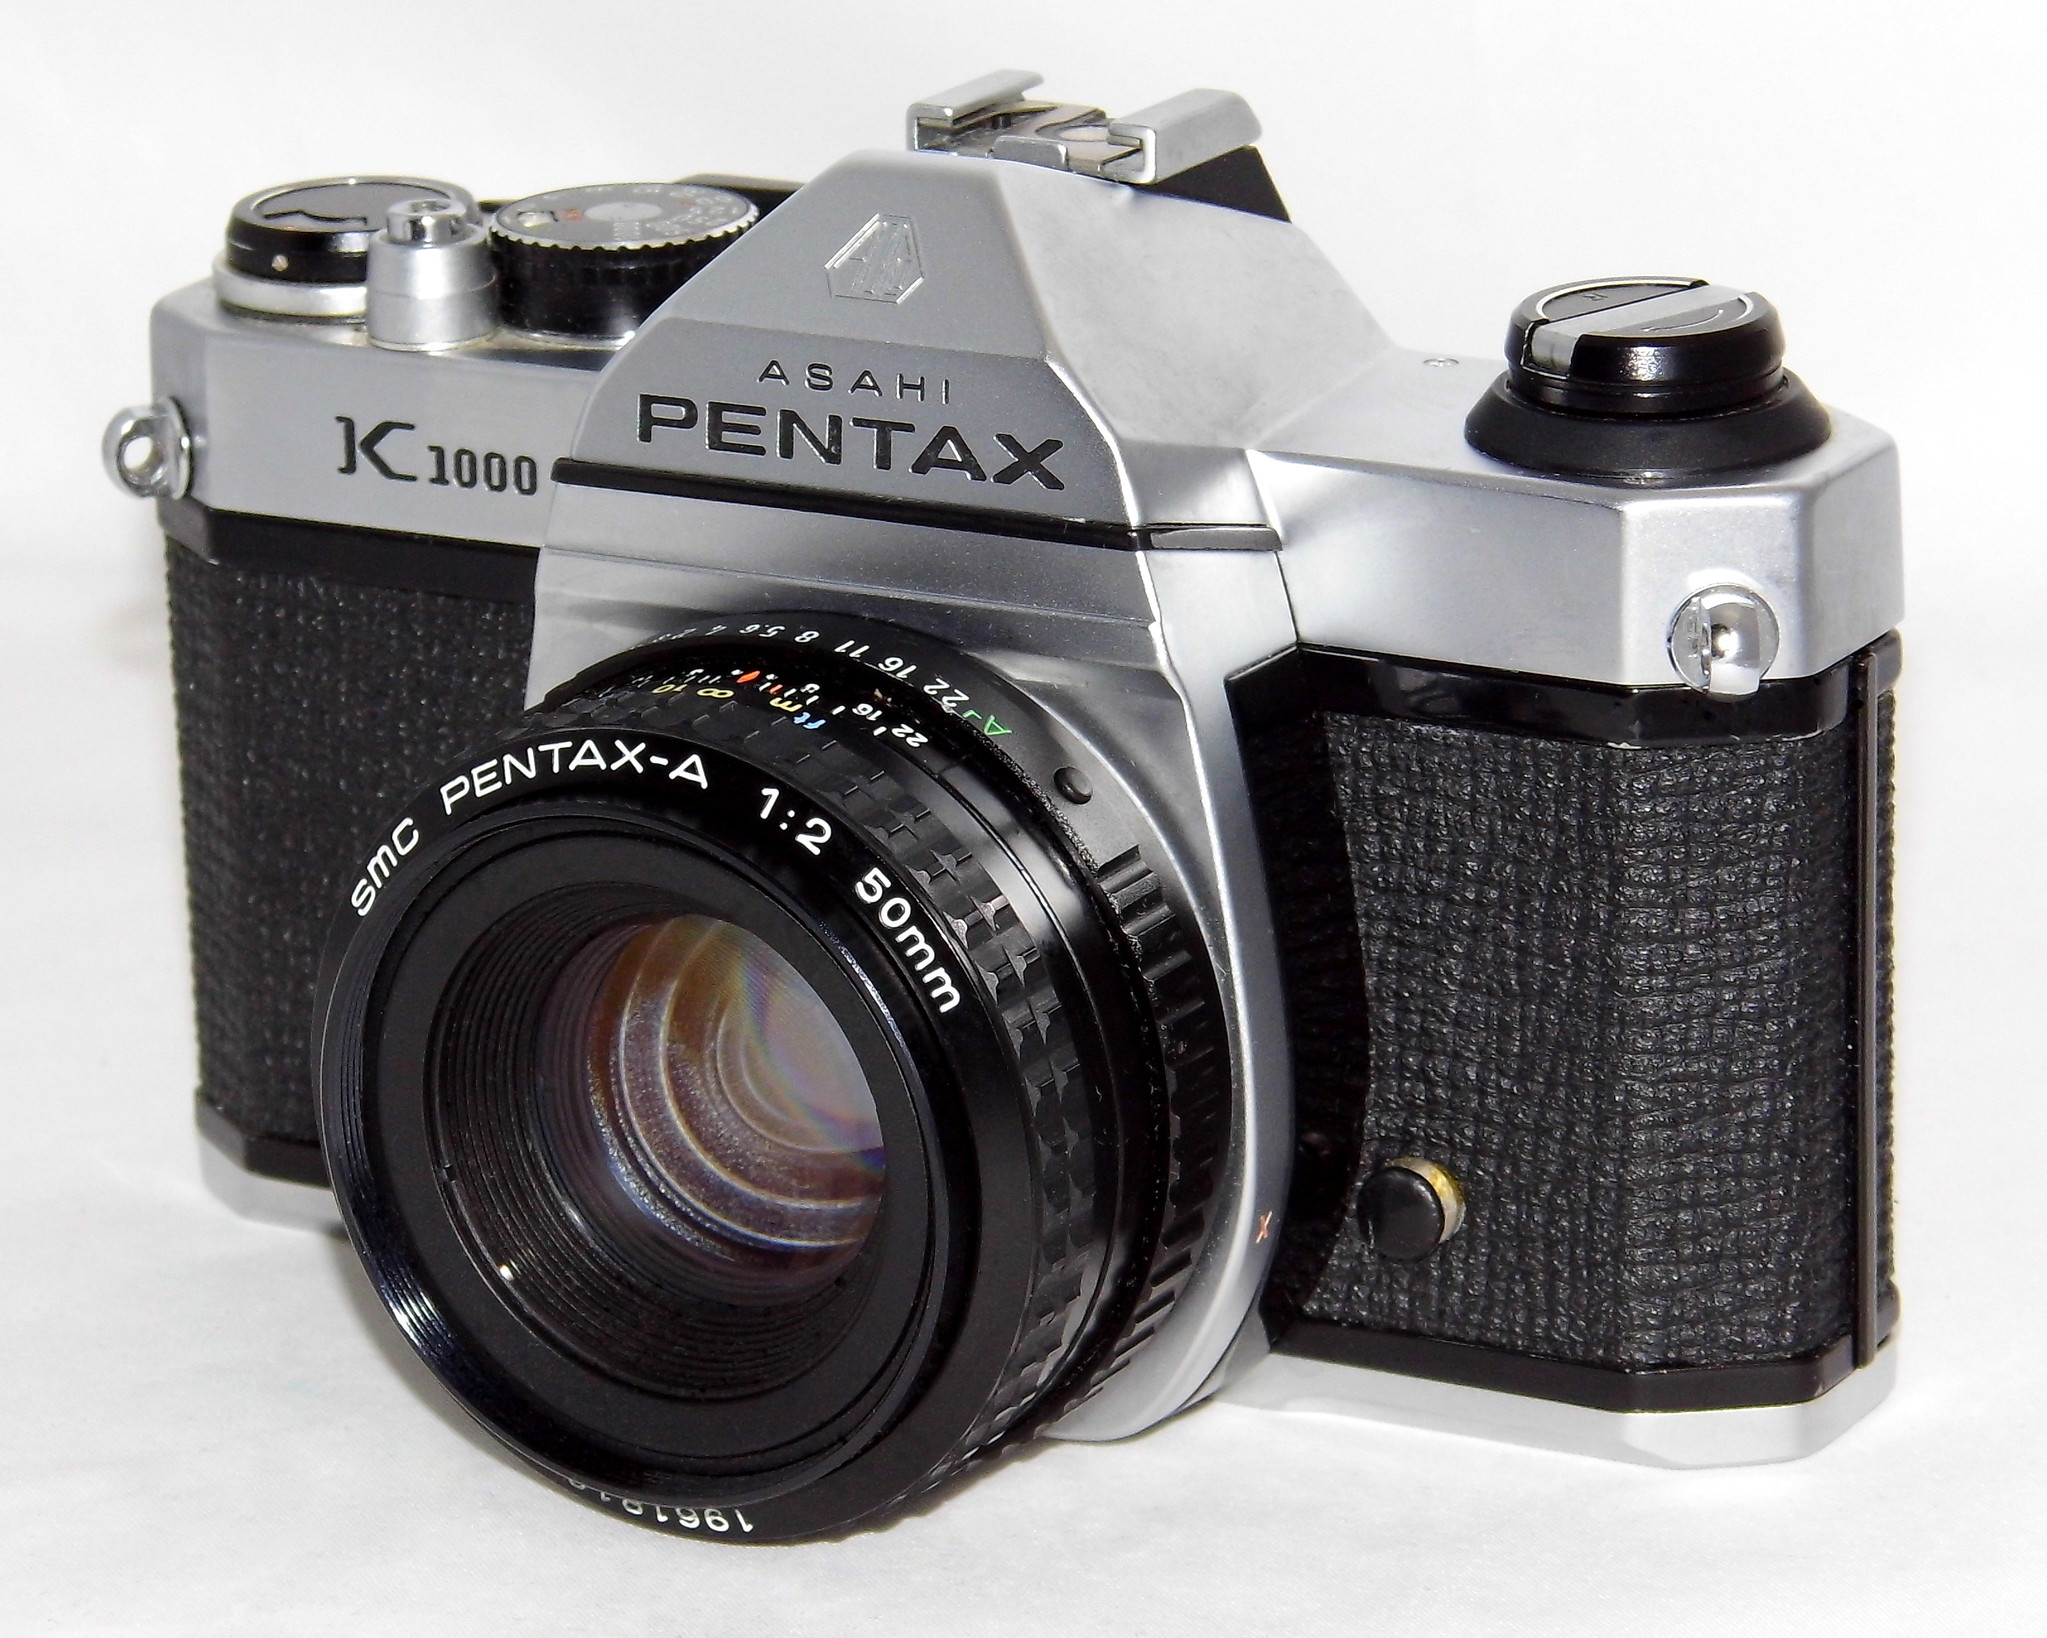 Pentax K1000 (Pic: Joe Haupt/Flickr)